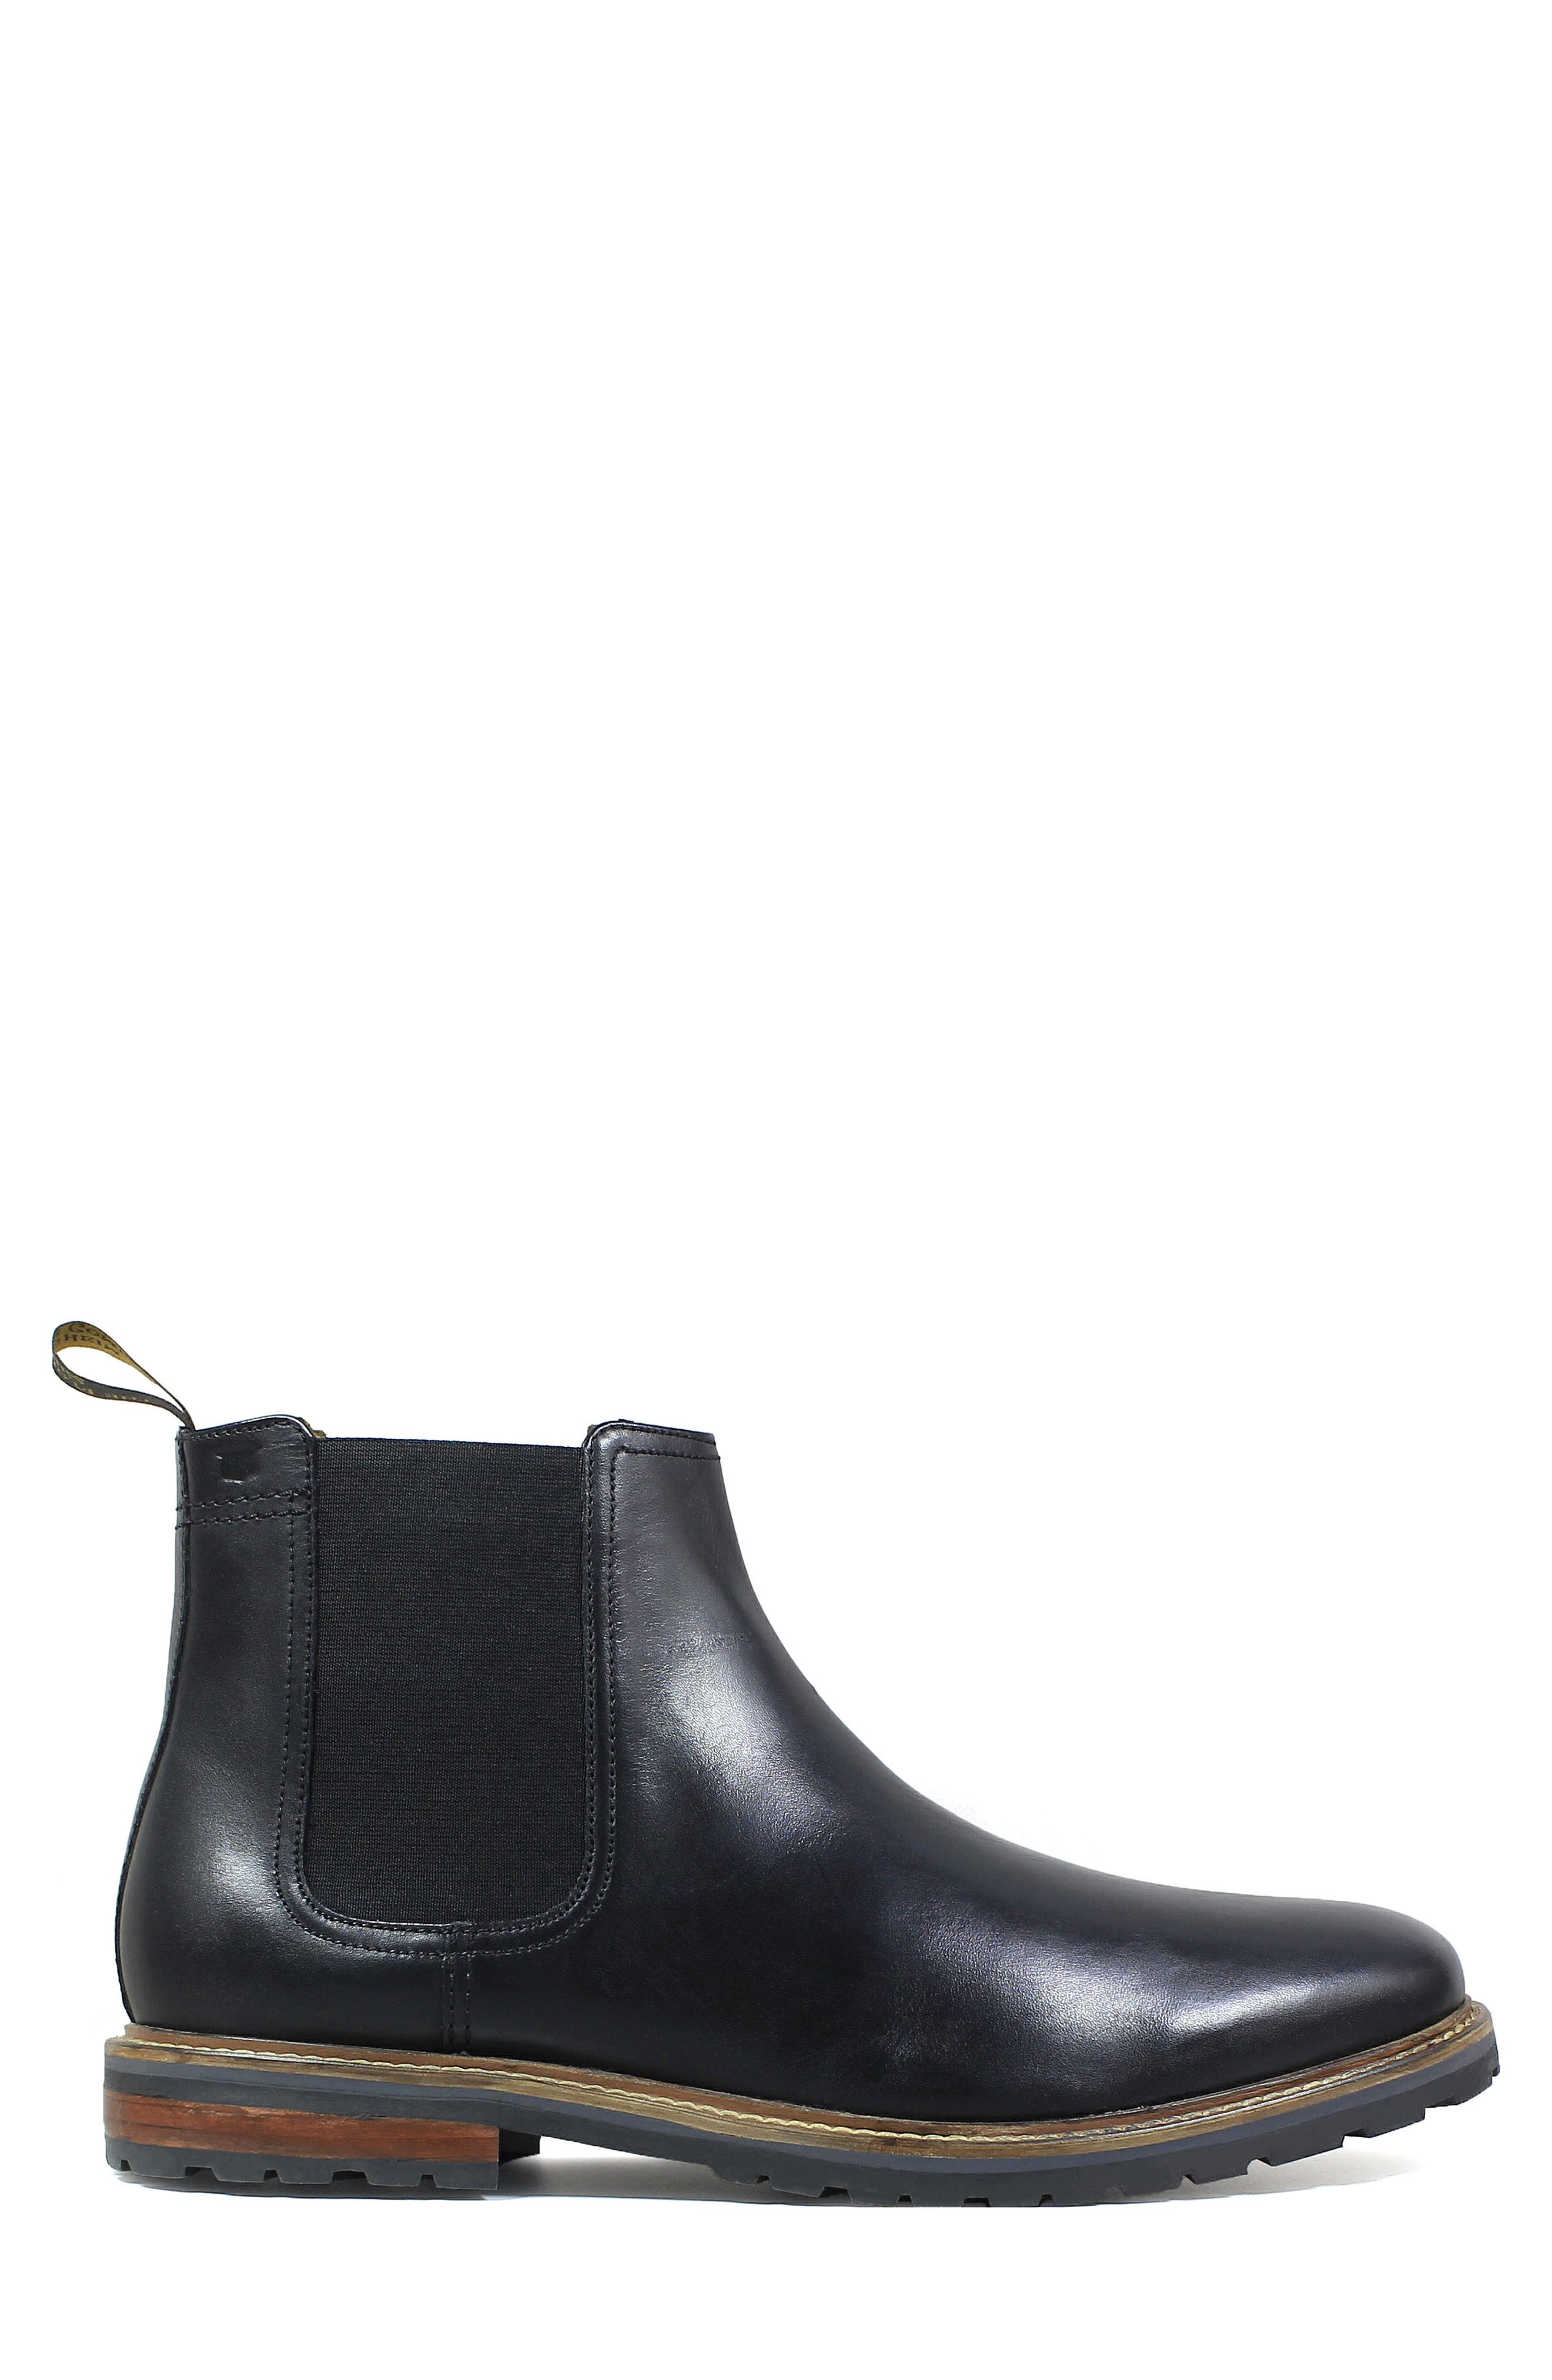 Estabrook Mid Chelsea Boot,                             Alternate thumbnail 3, color,                             BLACK LEATHER